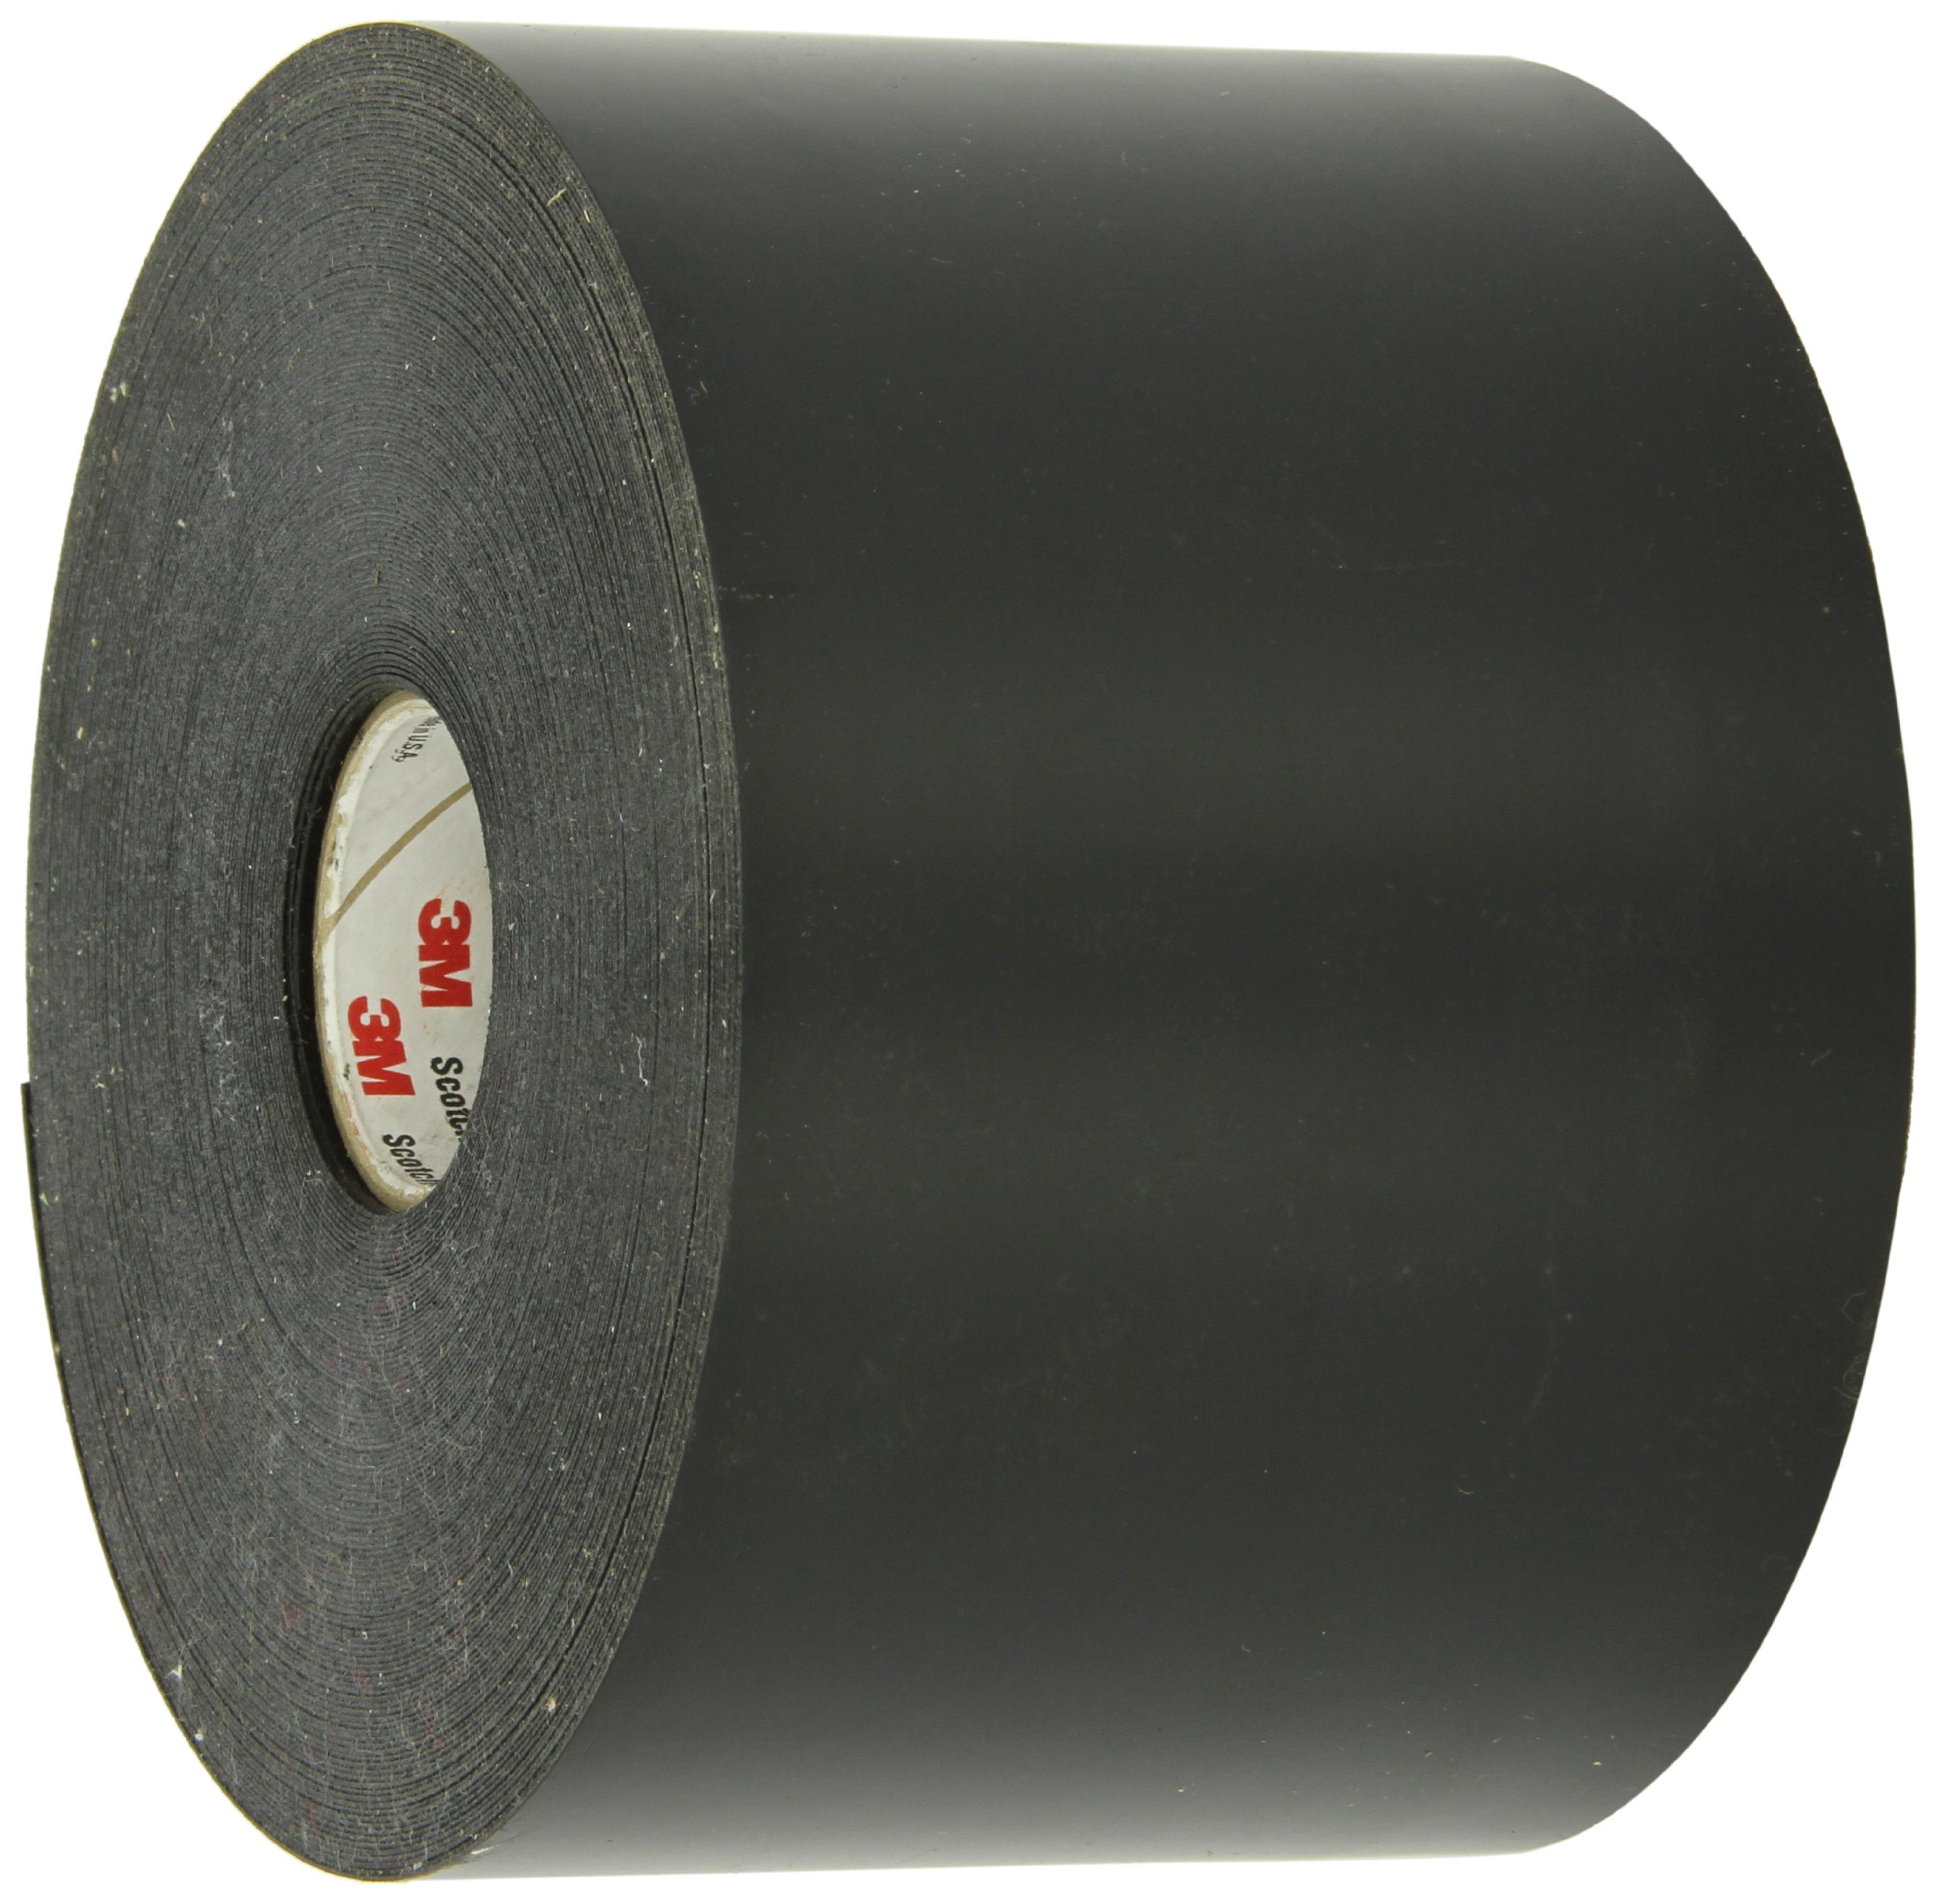 3M Scotchrap All-Weather Corrosion Protection Tape 51, 4 in x 100 ft (Pack of 1)